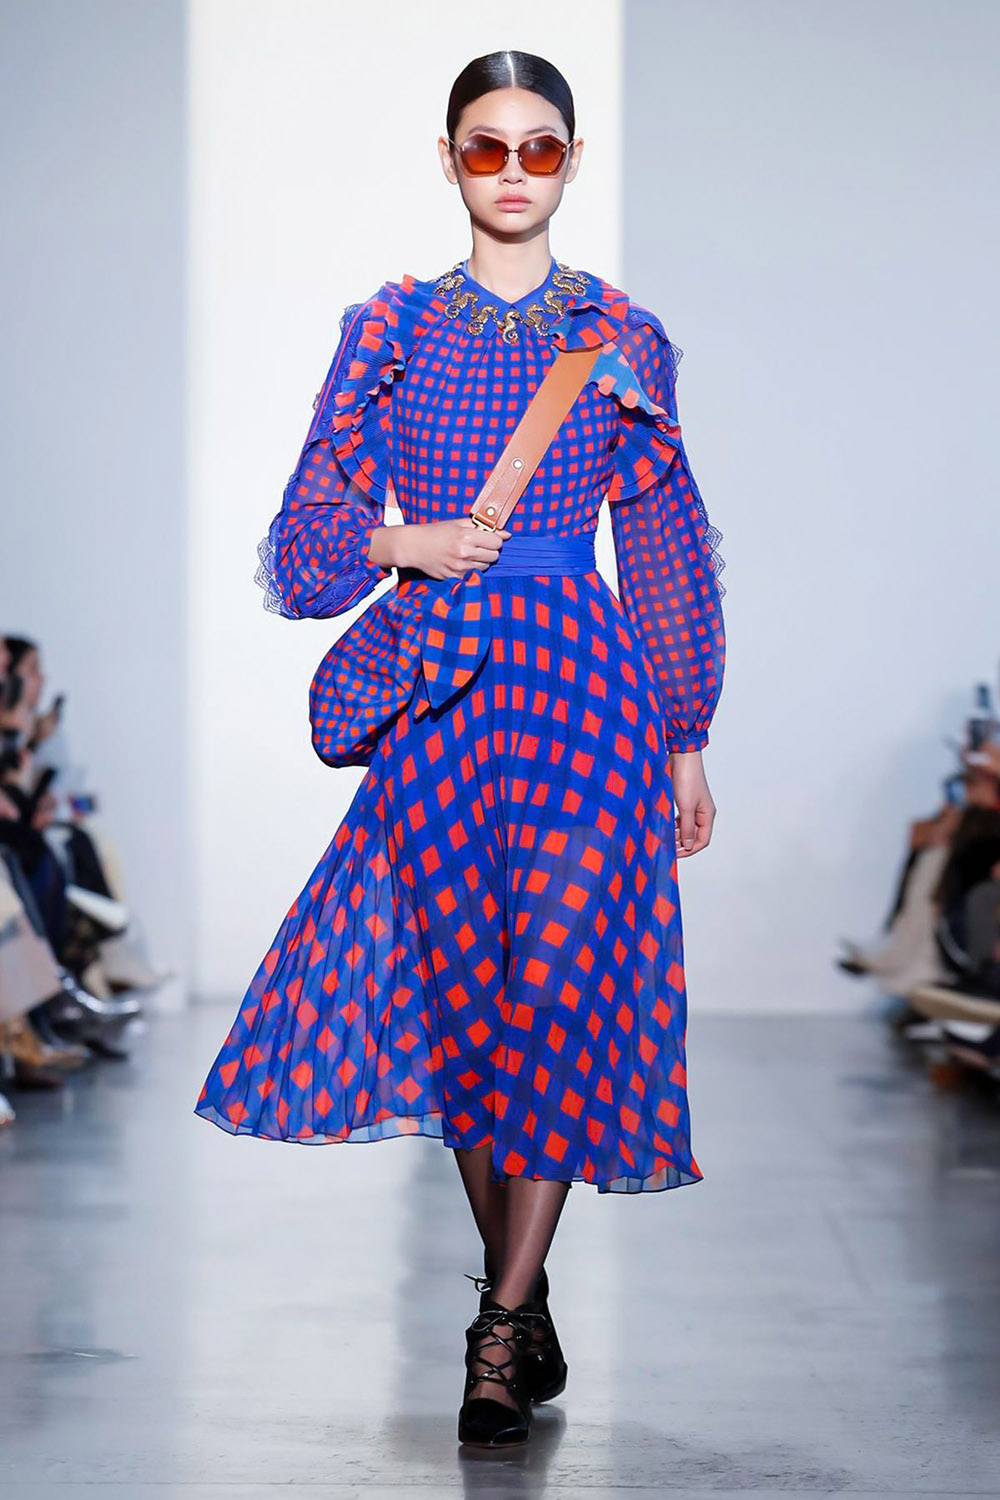 Best NYFW Looks I Self-Portrait Fall 2019 Collection #NYFW #Fall2019 #FW19 #Runway